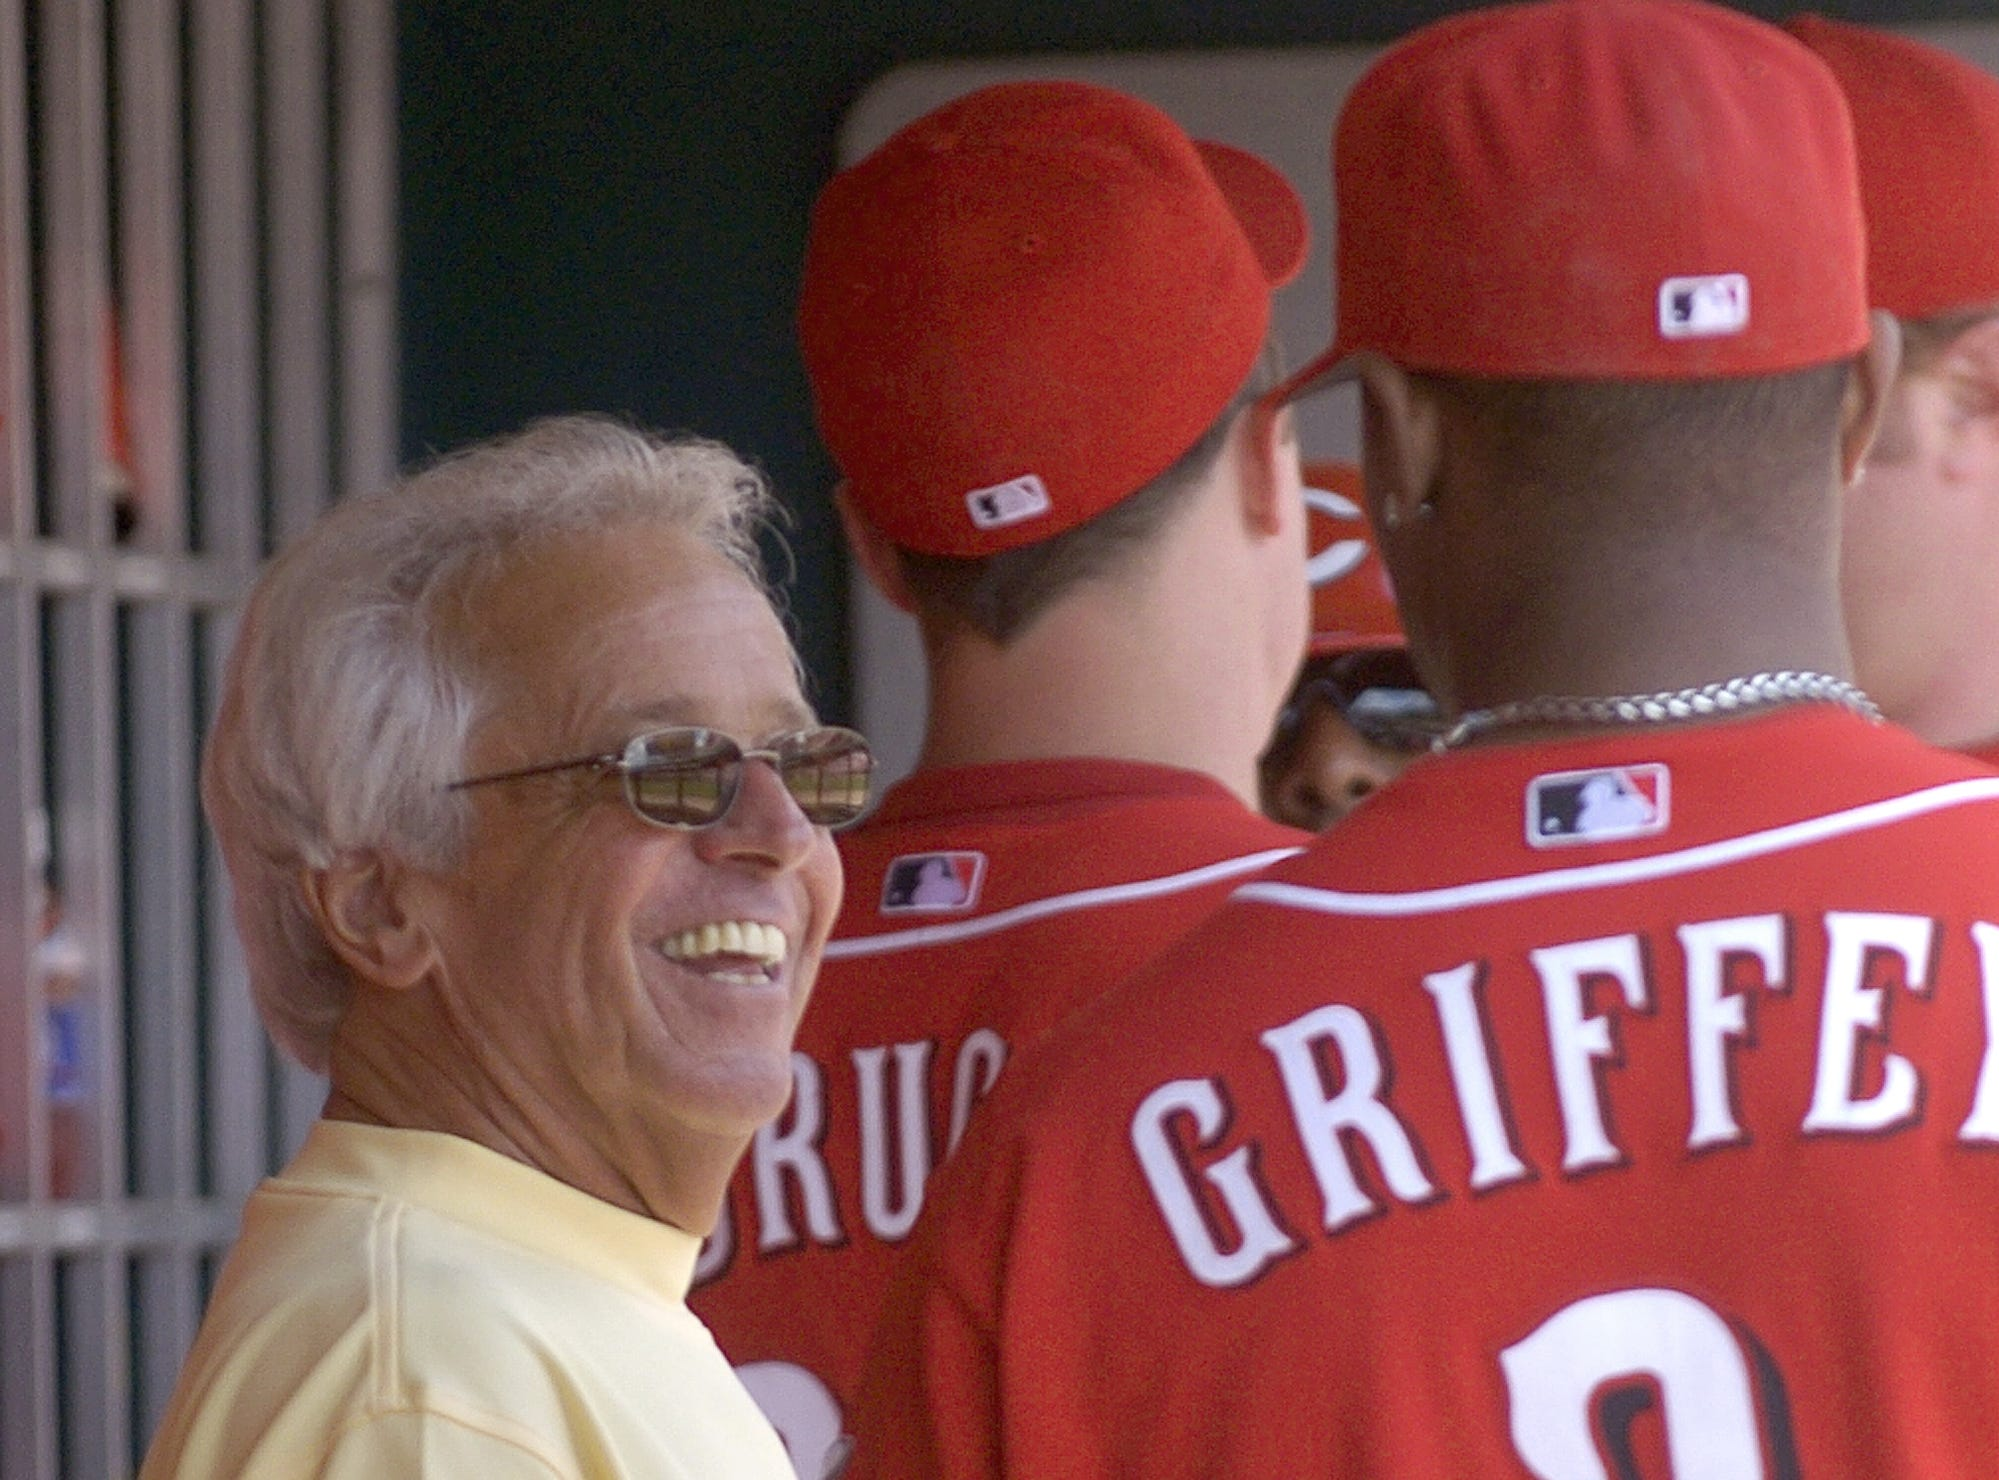 SUNDAY JUNE 1, 2008  REDS  SPORTS Reds broadcaster and Hall of Famer Marty Brennaman talk in the dugout prior to the game. The CIncinnati Reds beat the Atlanta Braves 6-2 to complete a three game sweep at the Great American Ball Park.  Ken Griffey, Jr. failed to hit his 600th career home run.  The Enquirer / Michael E. Keating